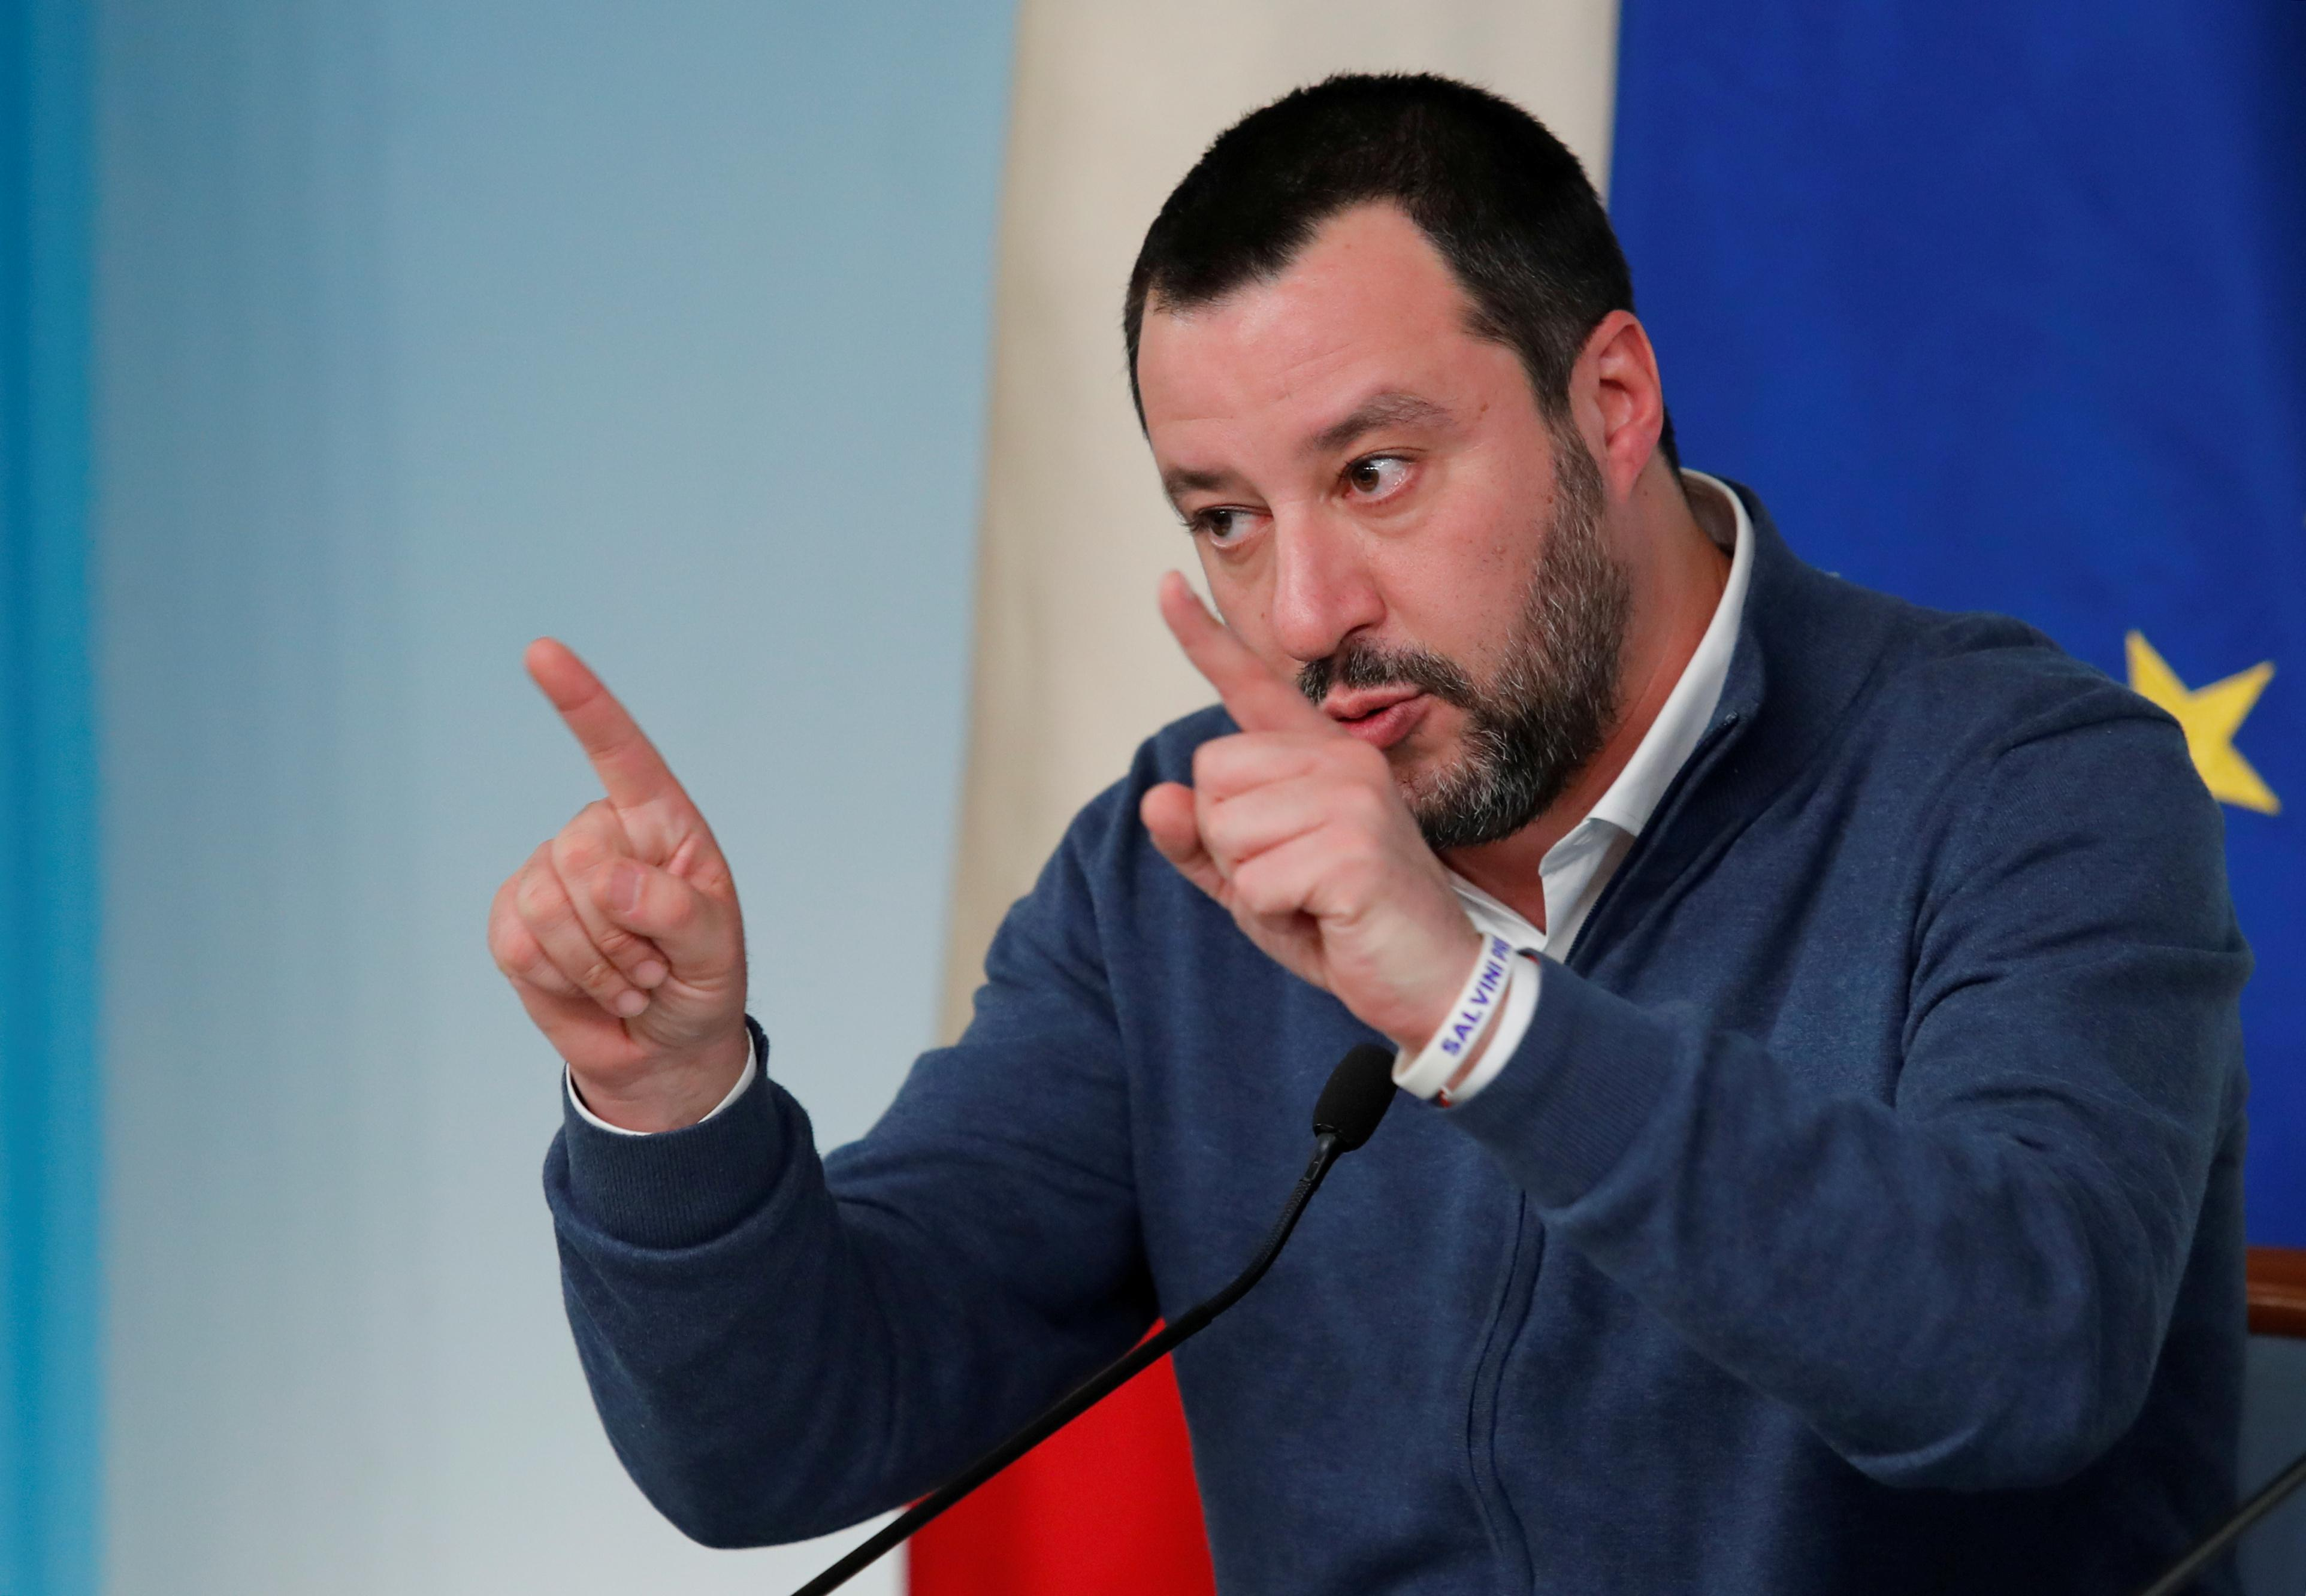 Italy's populist leaders pledge to replace central bank's top brass